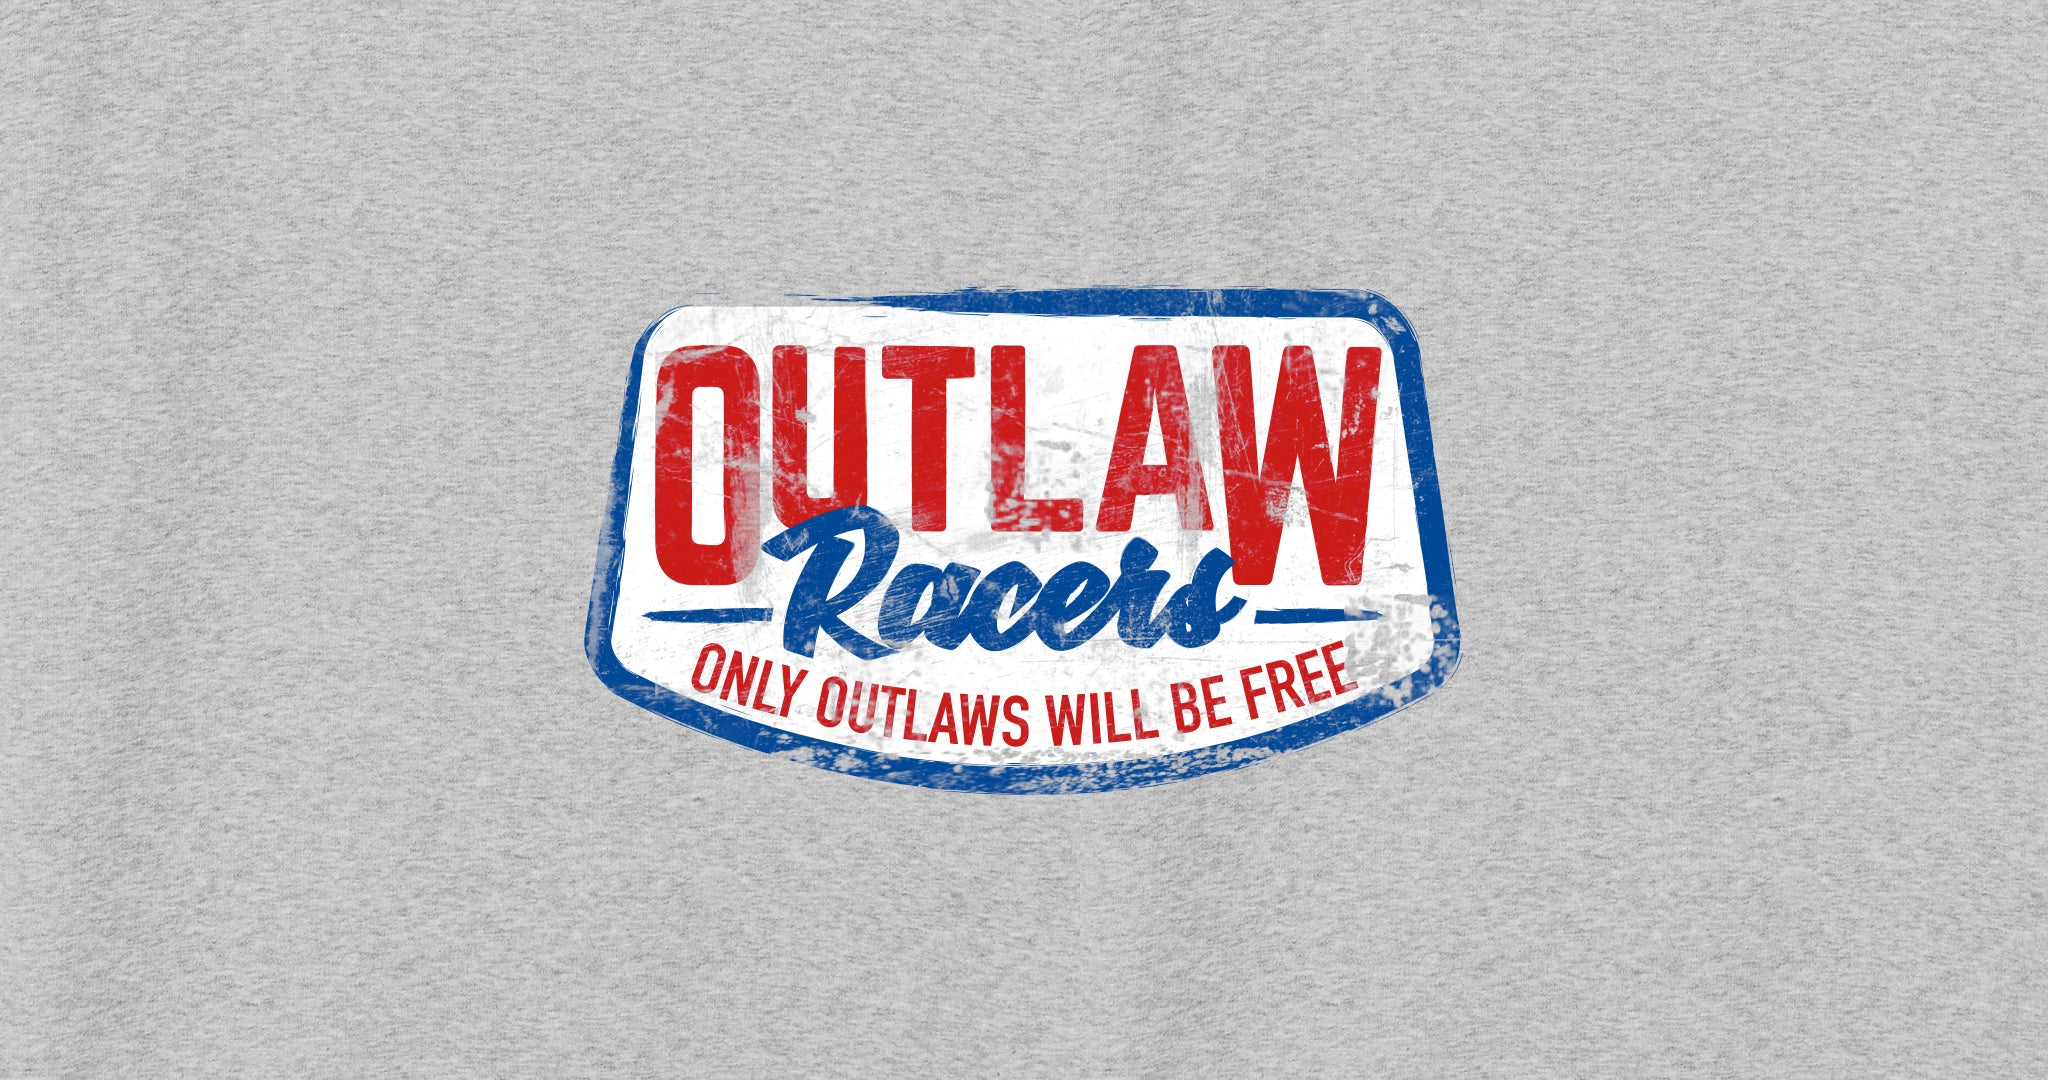 Outlaw Racers - Only Outlaws Will Be Free - design close-up on a grey marl background